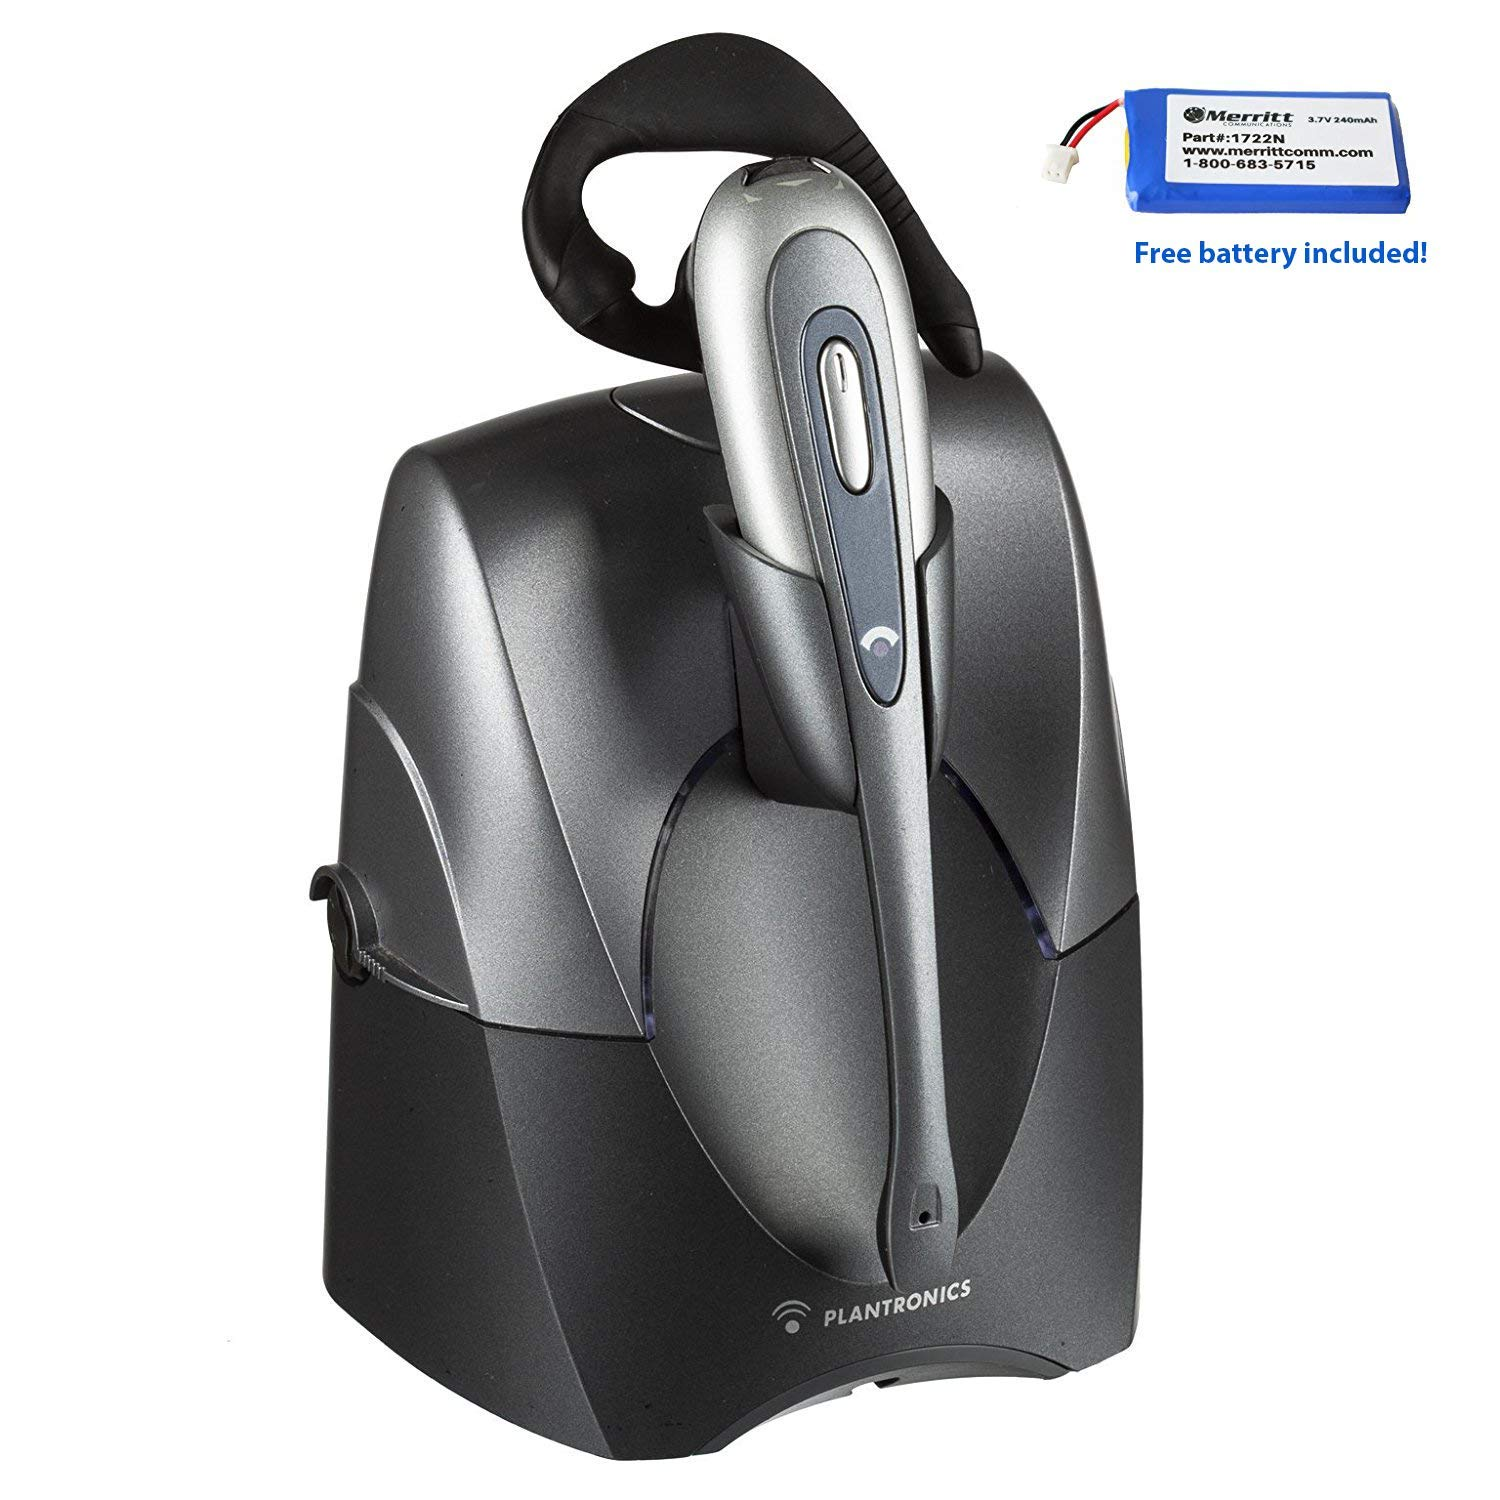 Plantronics CS55 Wireless Headset System With Free Spare Merritt Battery- Lifter Not Included (Certified Refurbished)